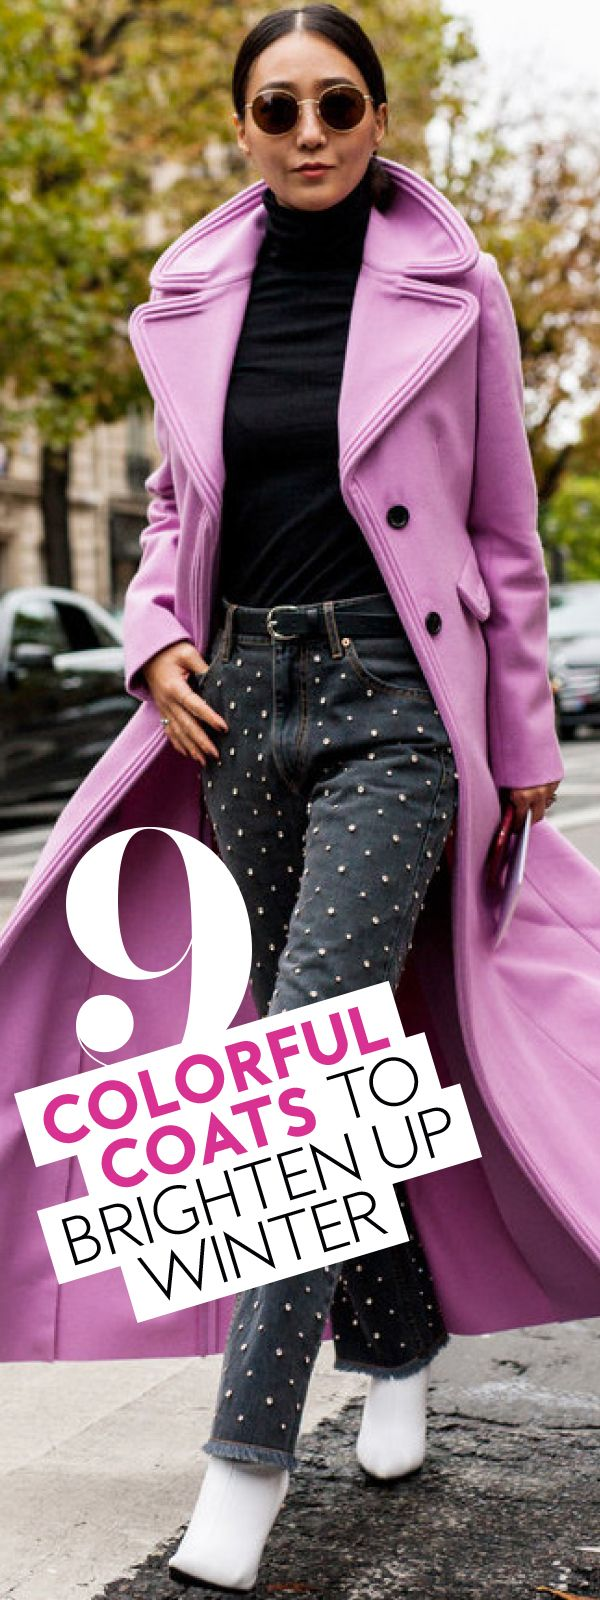 Colorful coats that will brighten your day. #ColorfulCoats #WinterCoats #BrightWinterCoats